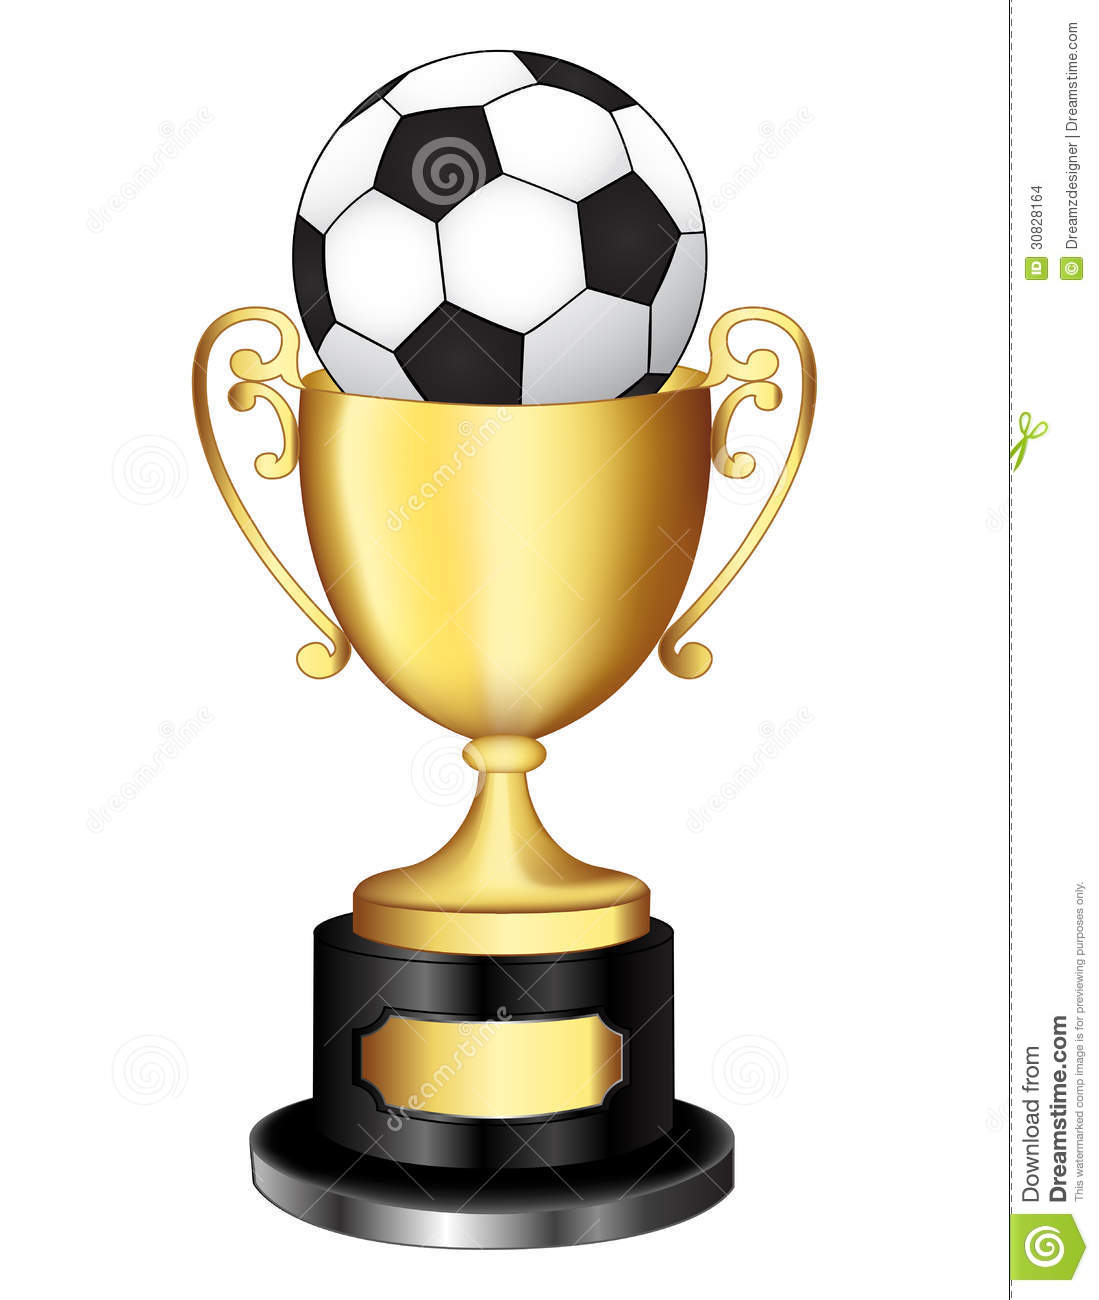 free clipart world cup - photo #42